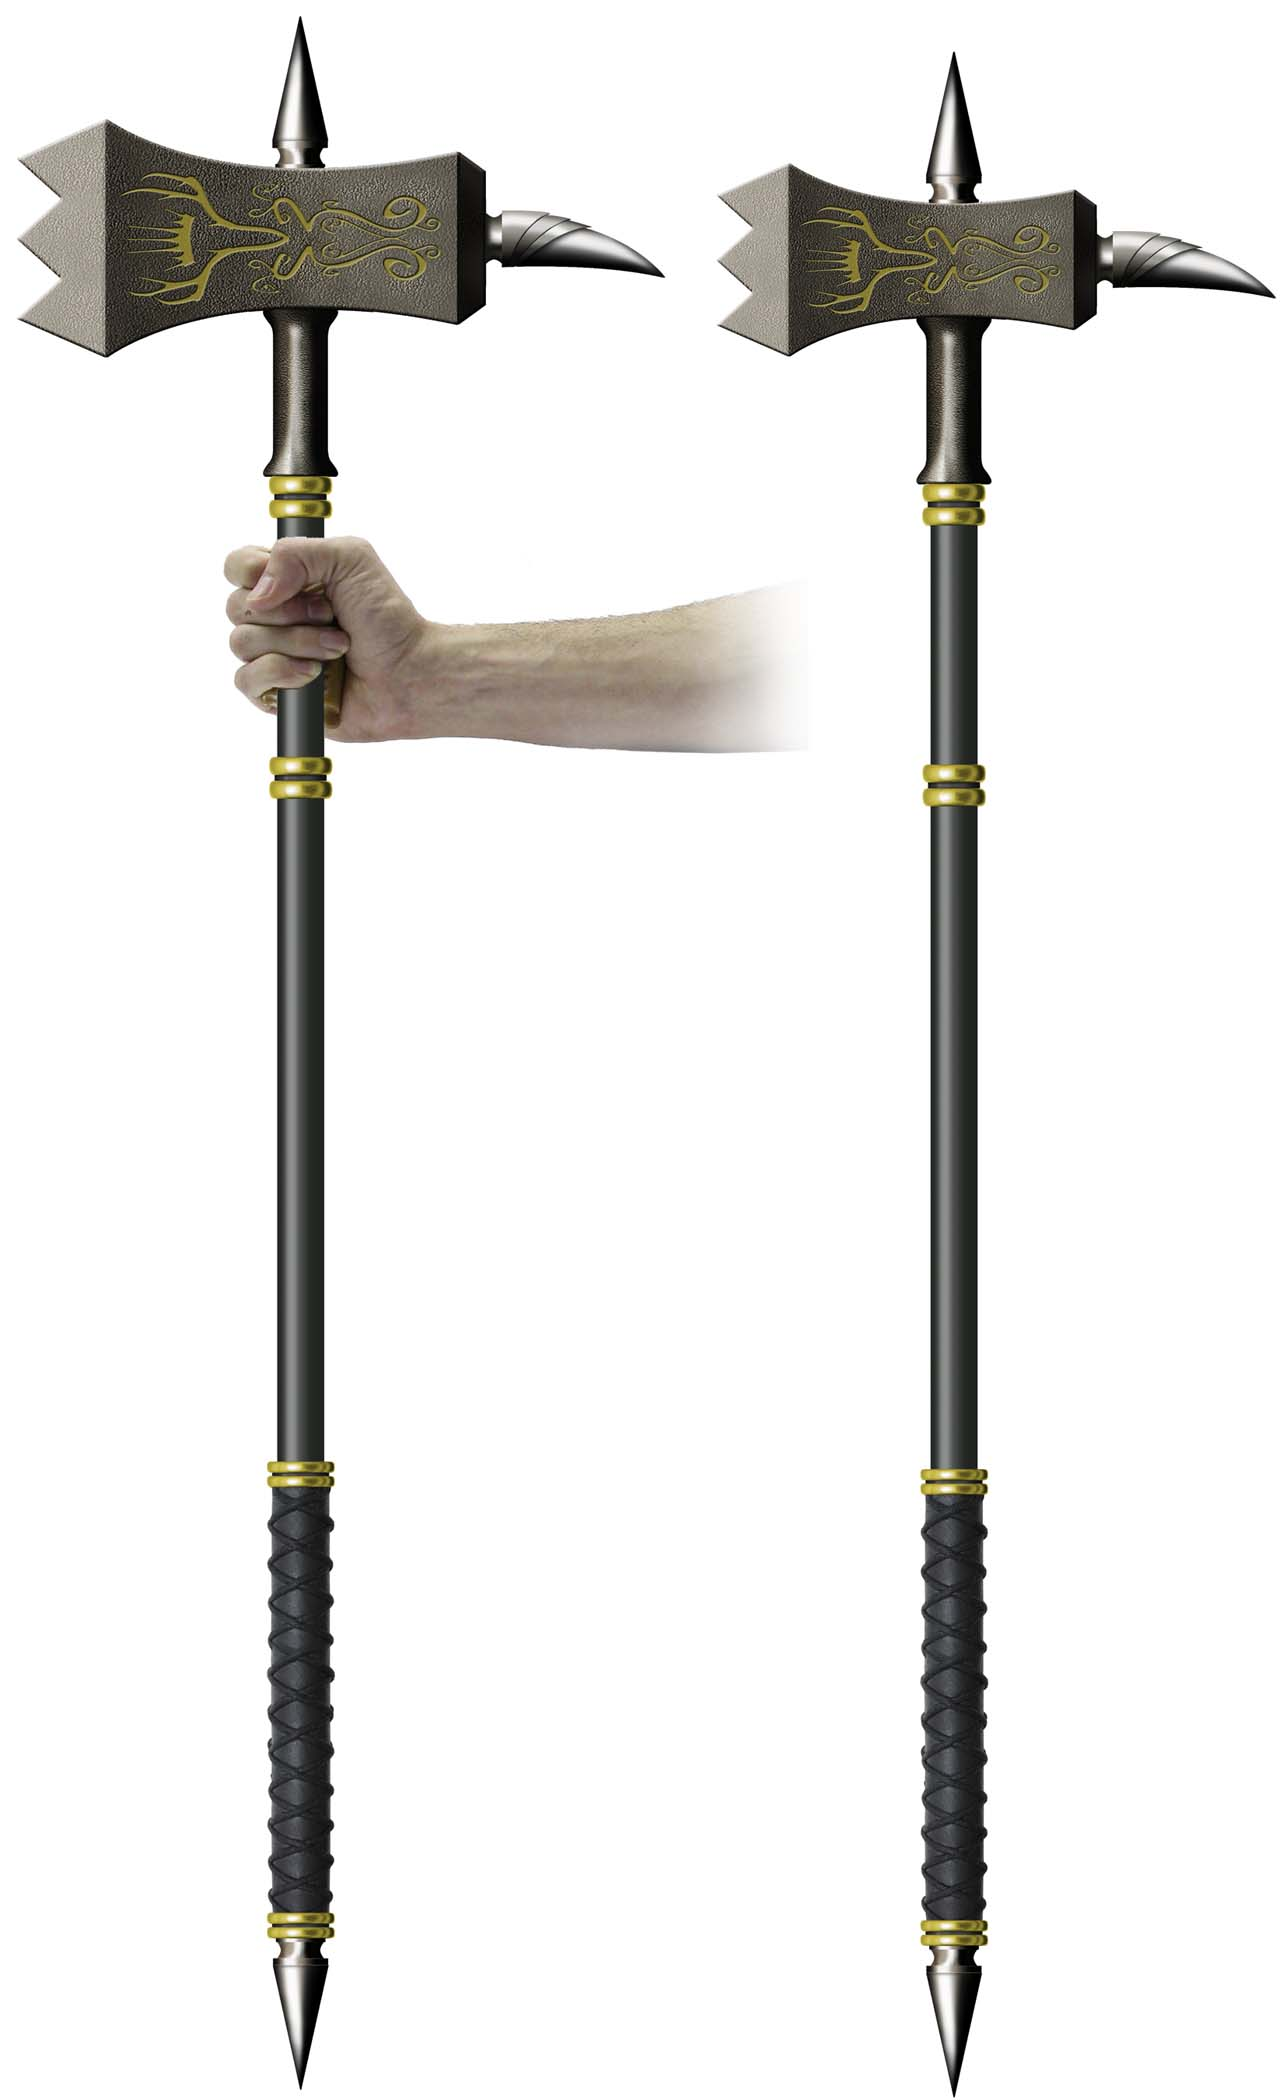 King Robert Baratheon's War Hammer